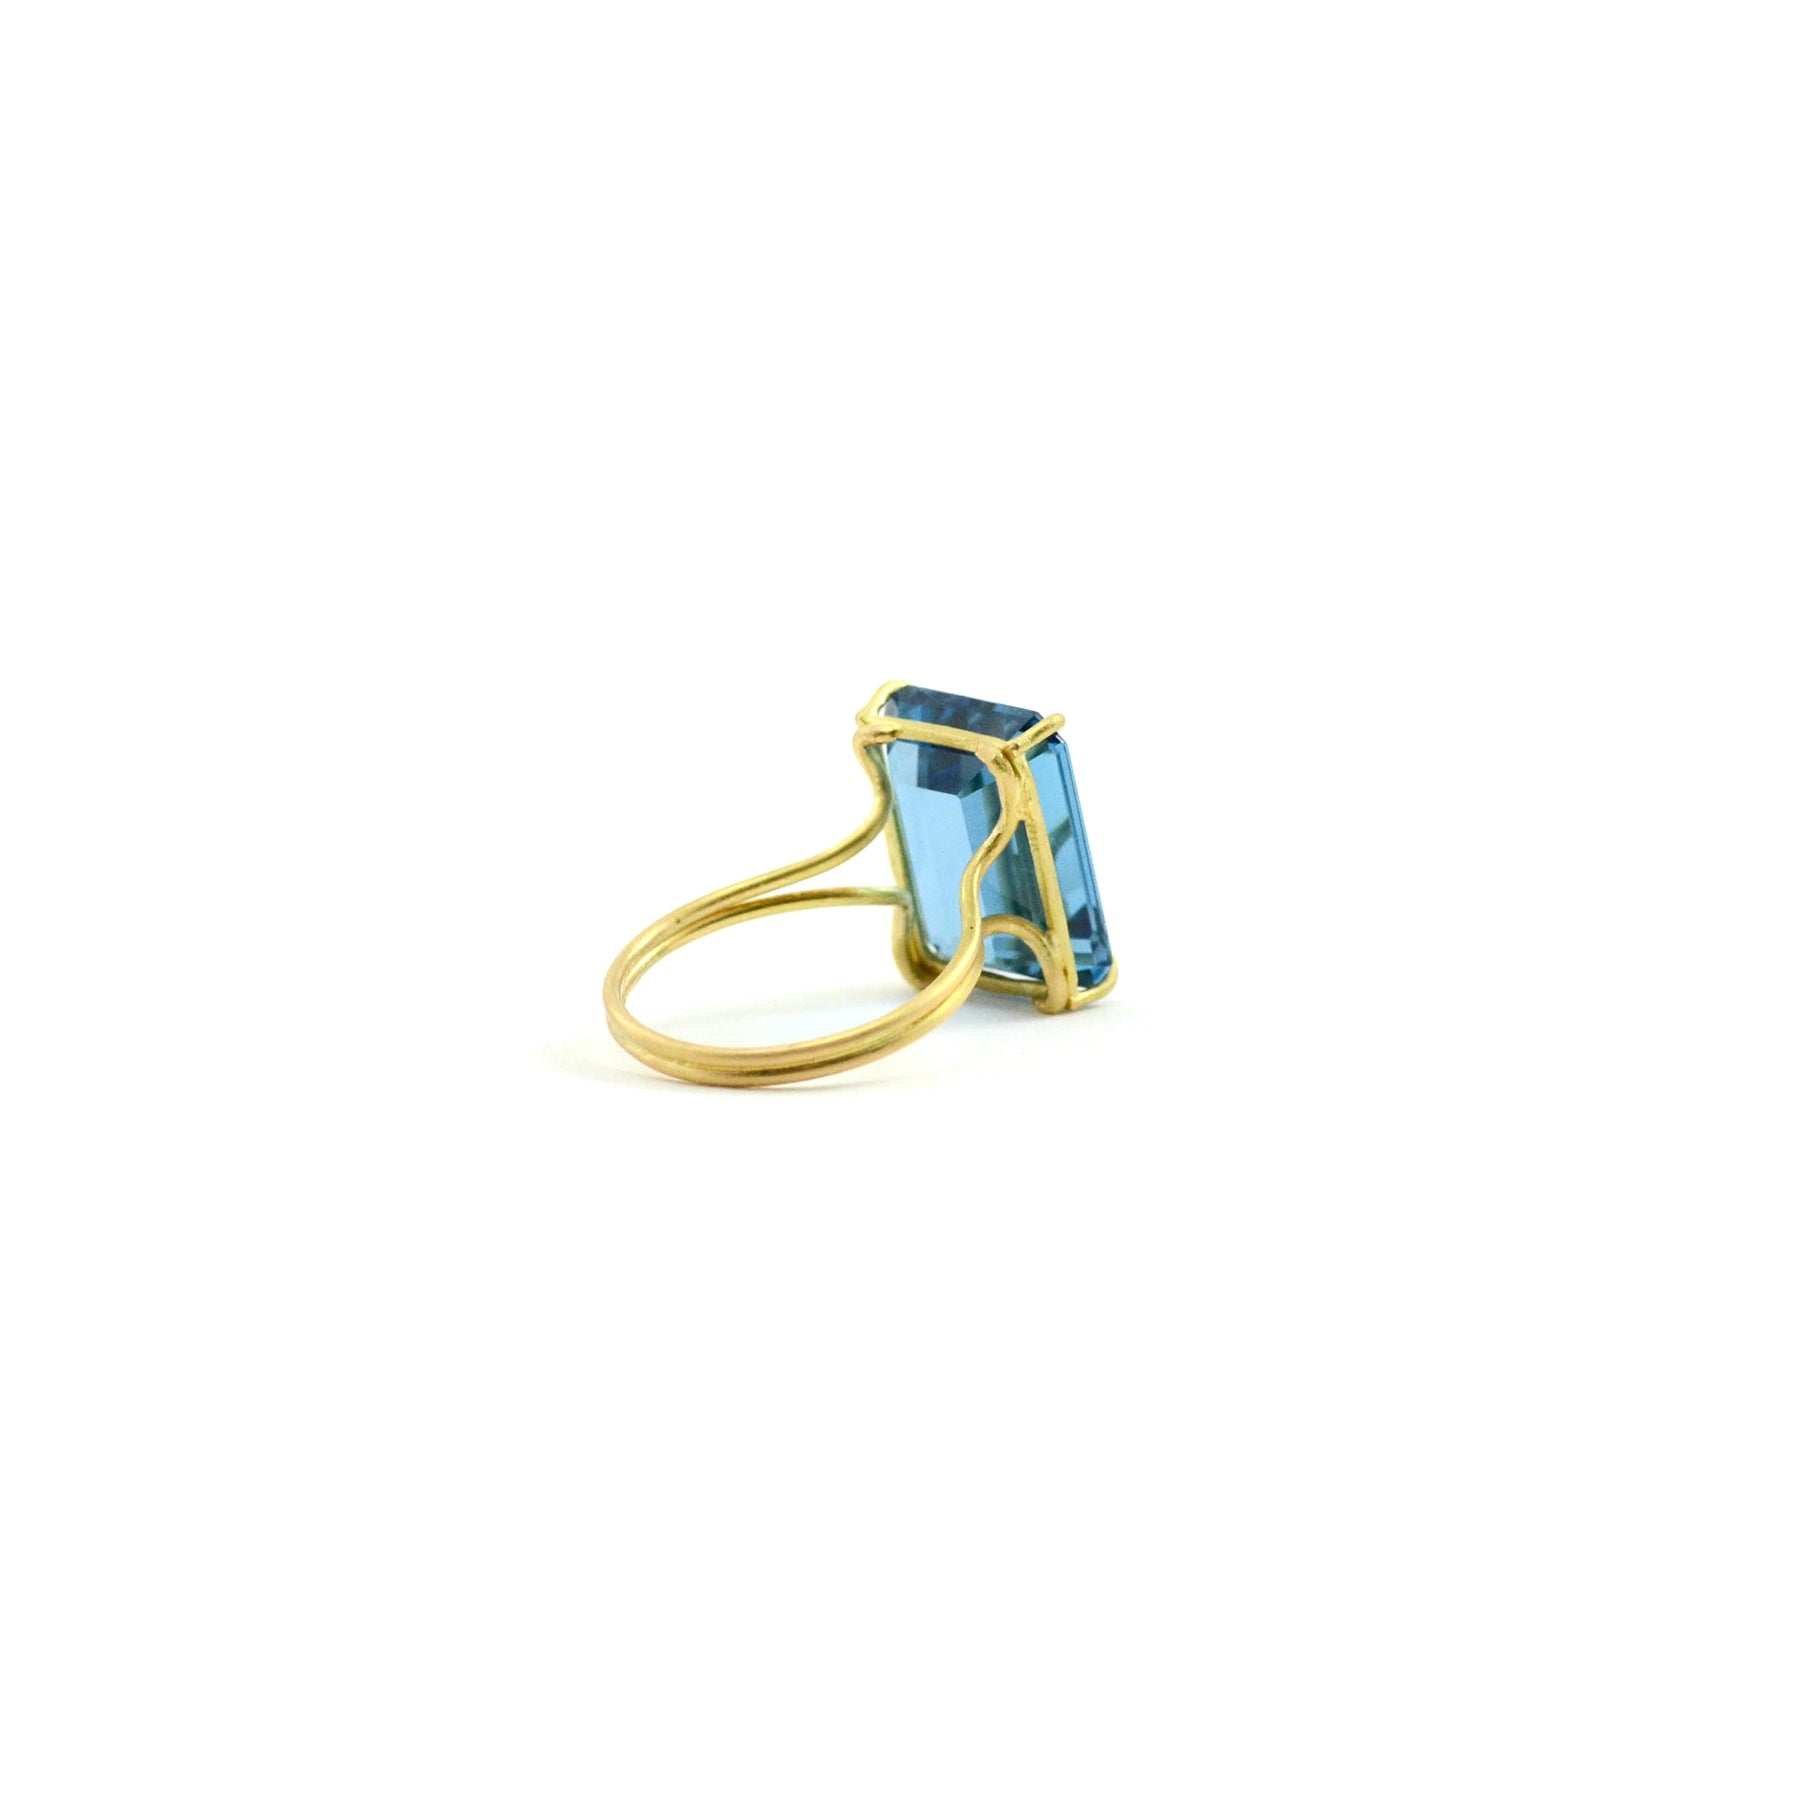 Emerald Cut London Blue Topaz Ring